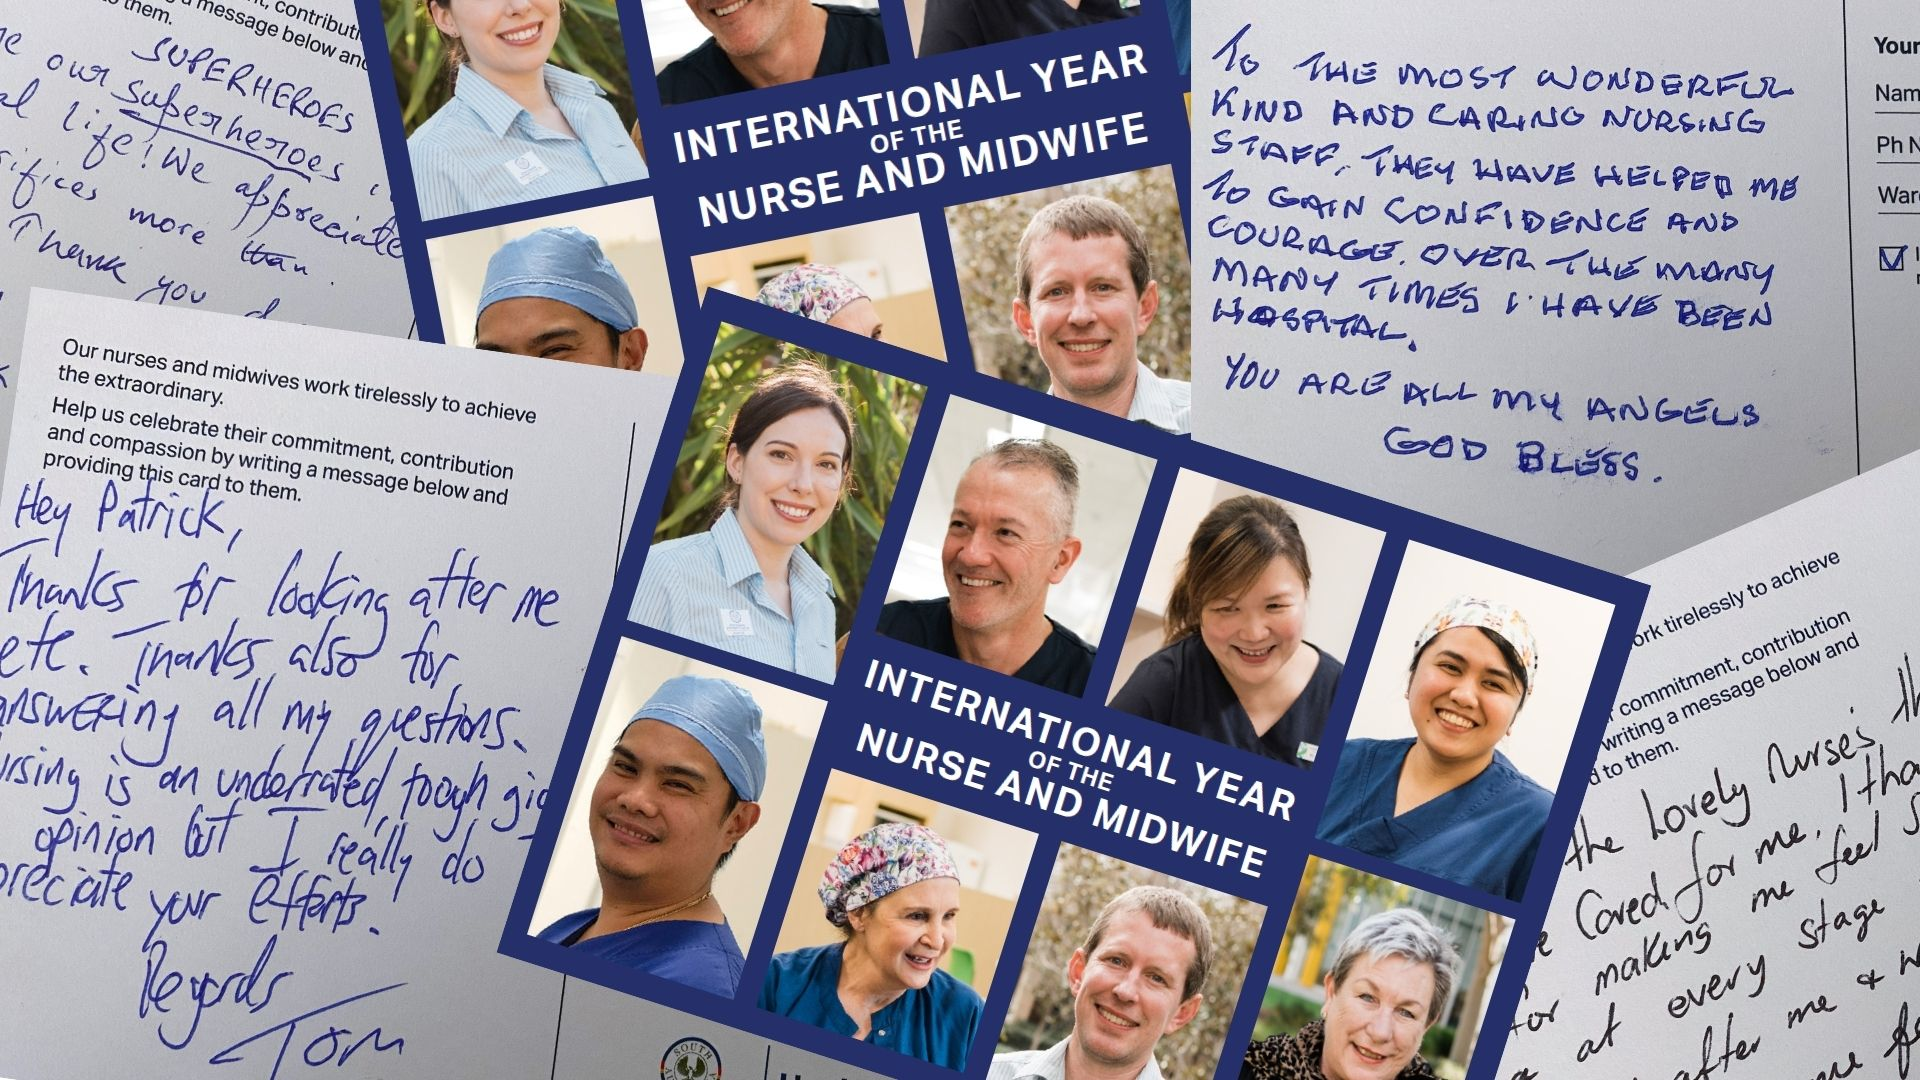 Nurses receive overwhelming messages of thanks